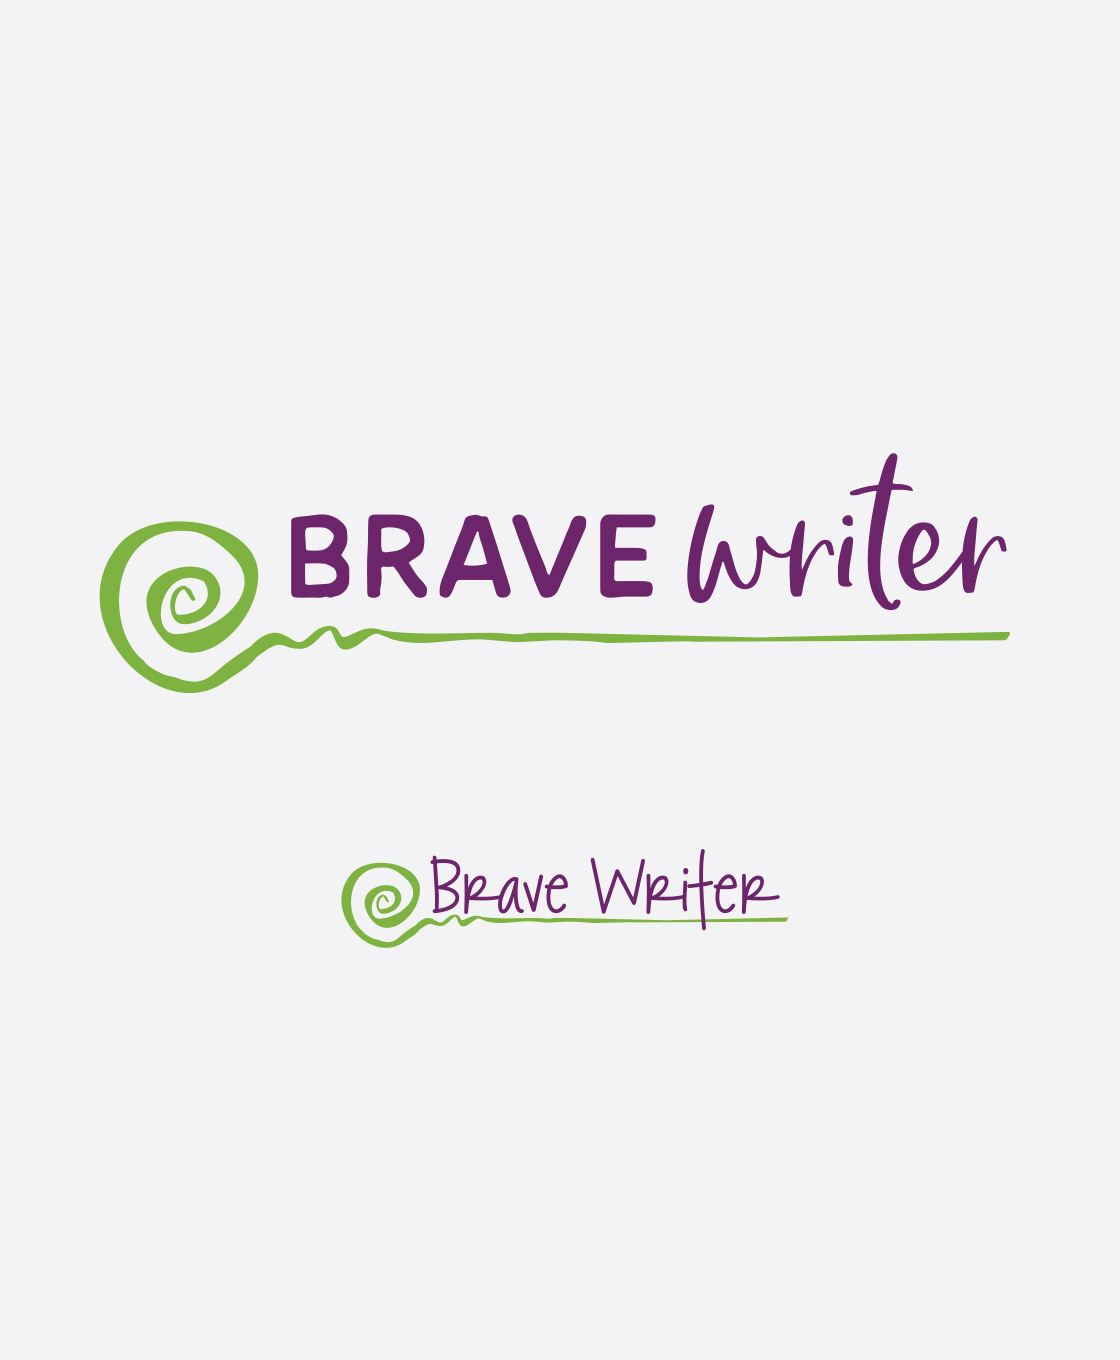 bravewriter-logo-evolution